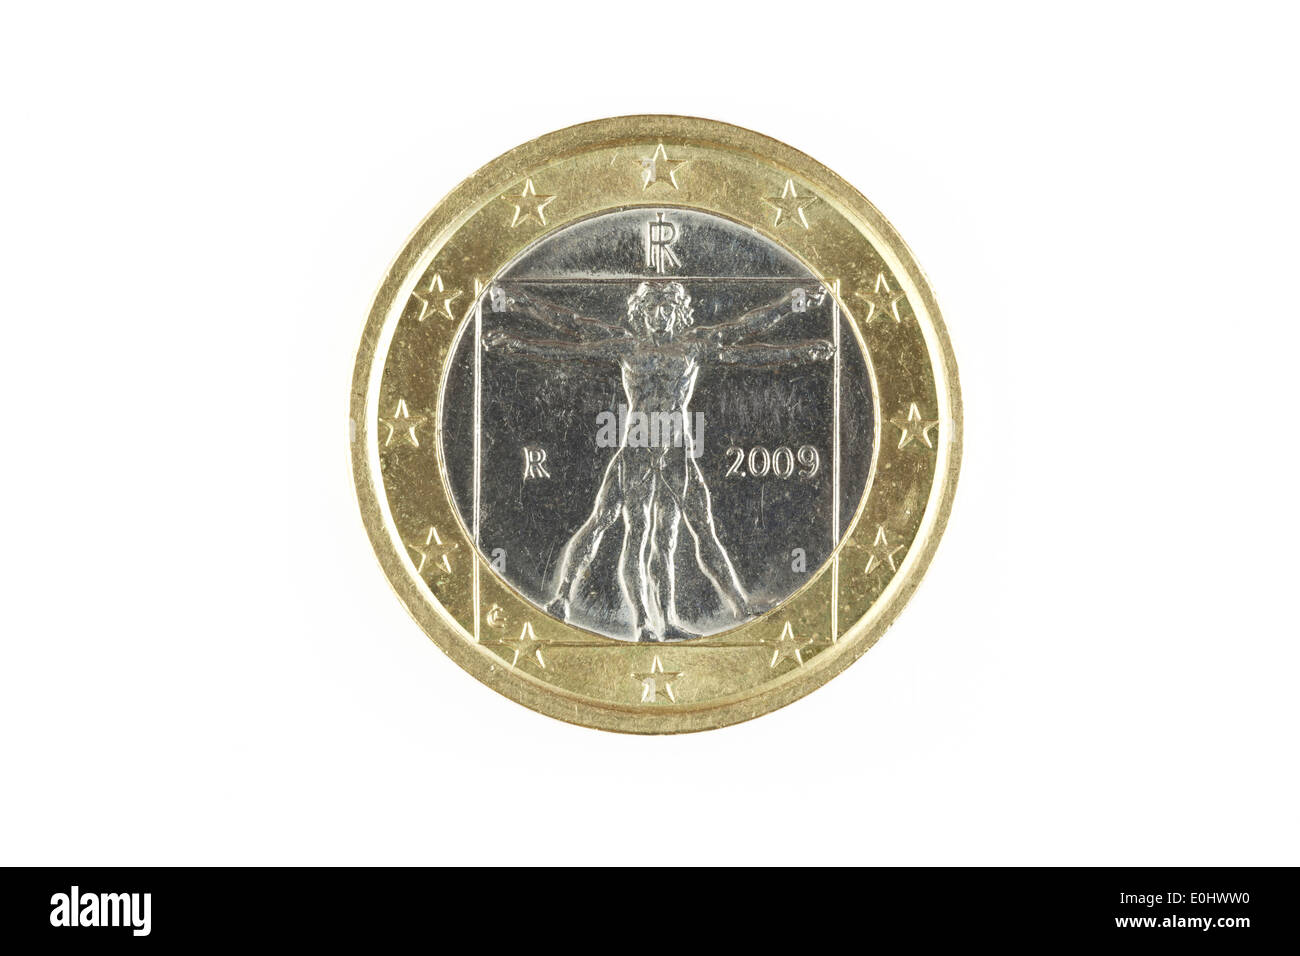 Italian one euro coin isolated on a white background - Stock Image